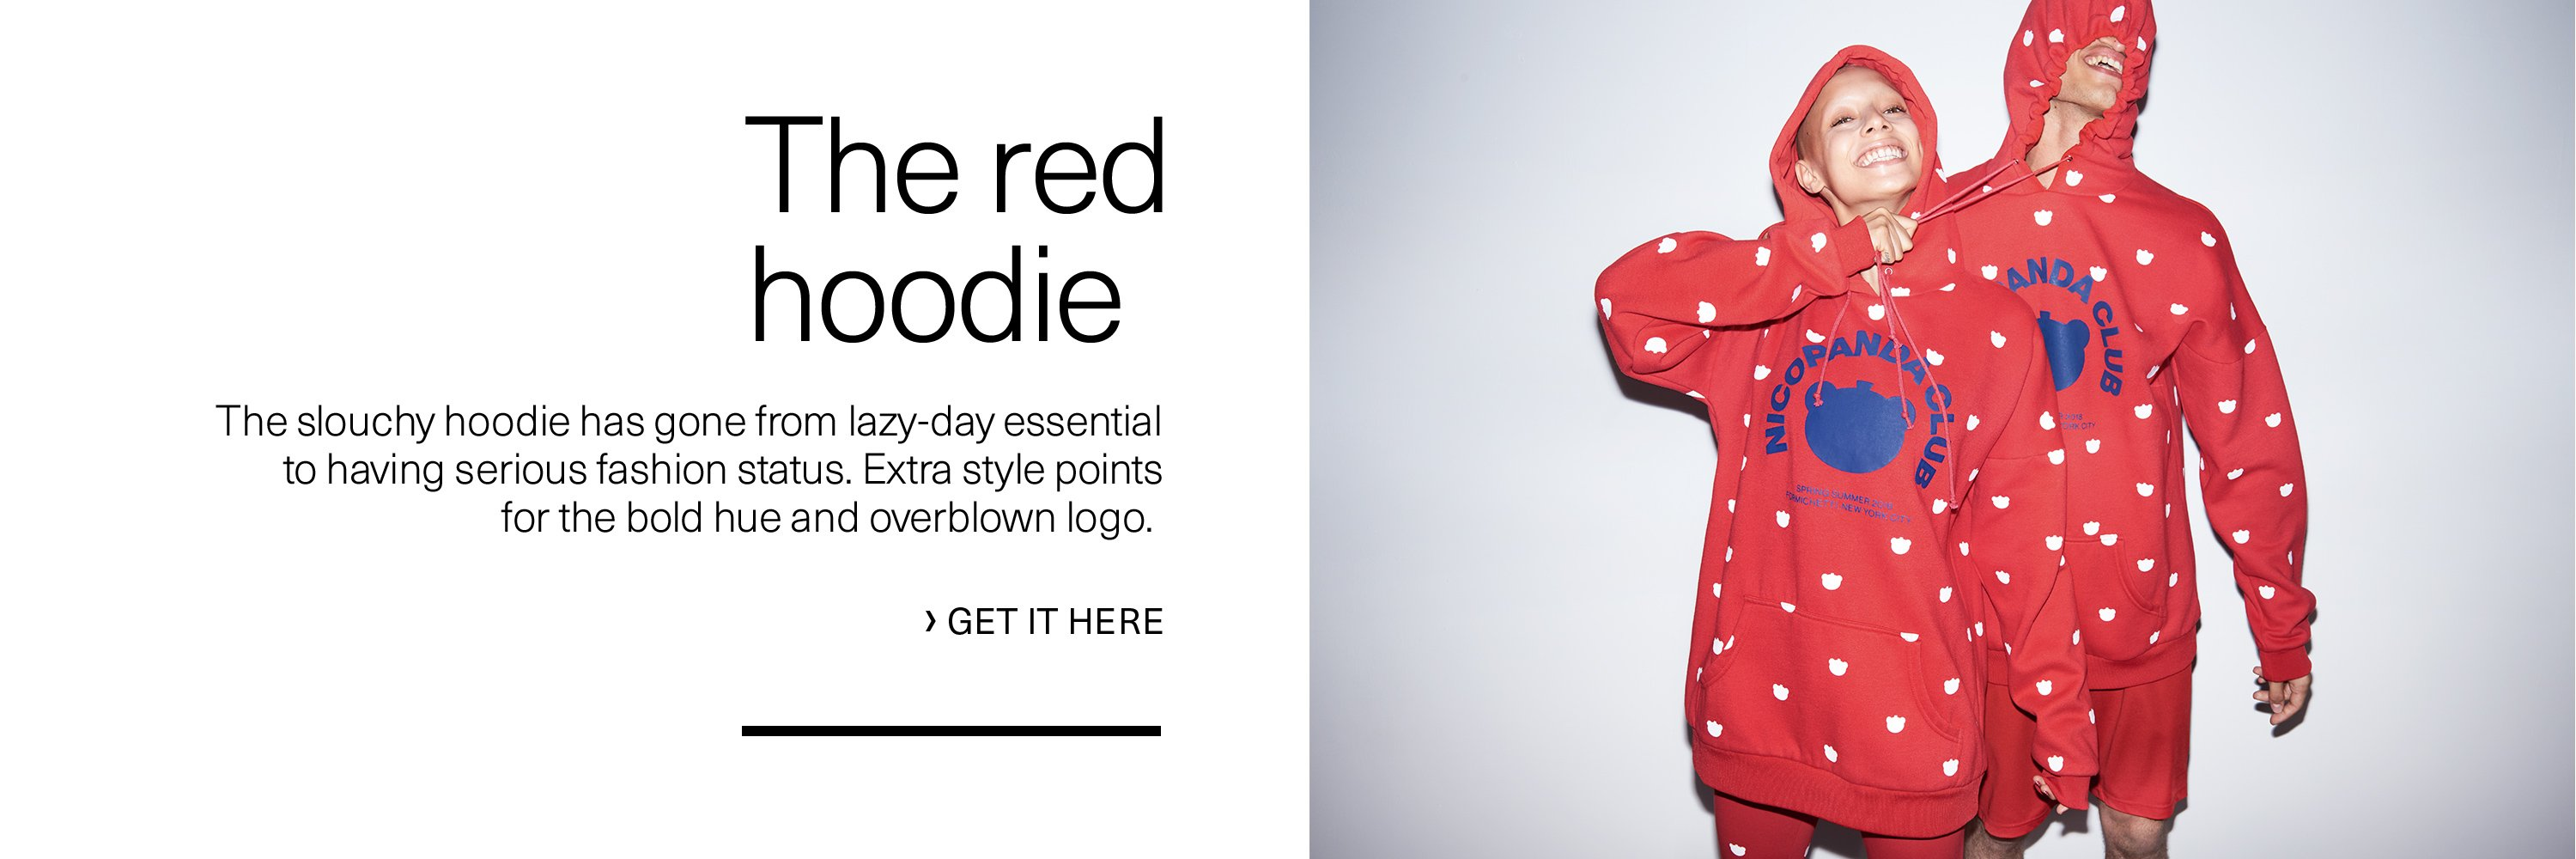 The red hoodie